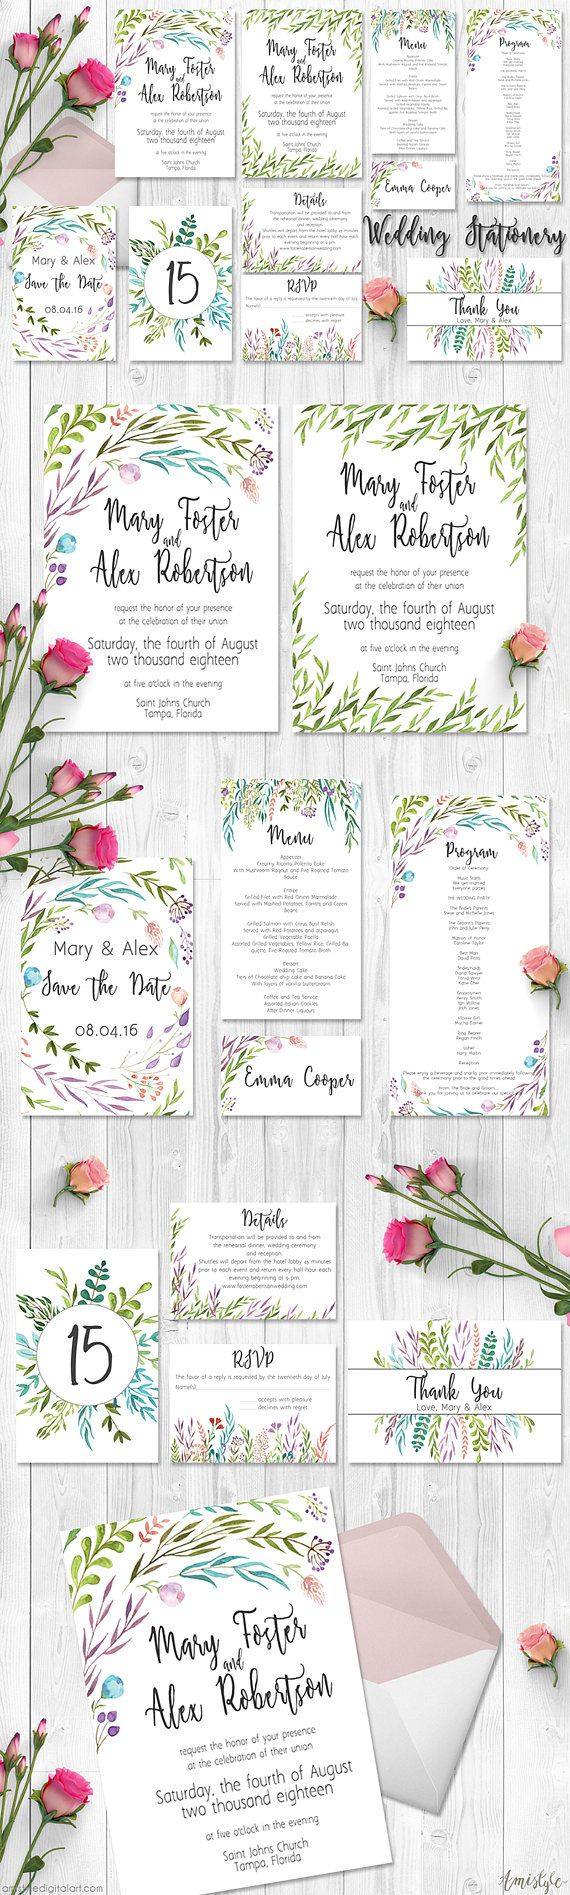 Printable wedding invitation suite - embellished with adorable watercolor leaf and berry elementsThe wedding invitation set is prepared in high-resolution EDITABLE PDF file, so you can DIY edit and print it at home or at your local copy shop. My printables are created from my own hand-painted watercolor designs and artwork in high-resolution, this means you will receive a unique, original design by buying a listing from my shop.  By Amistyle Digital Art on Etsy